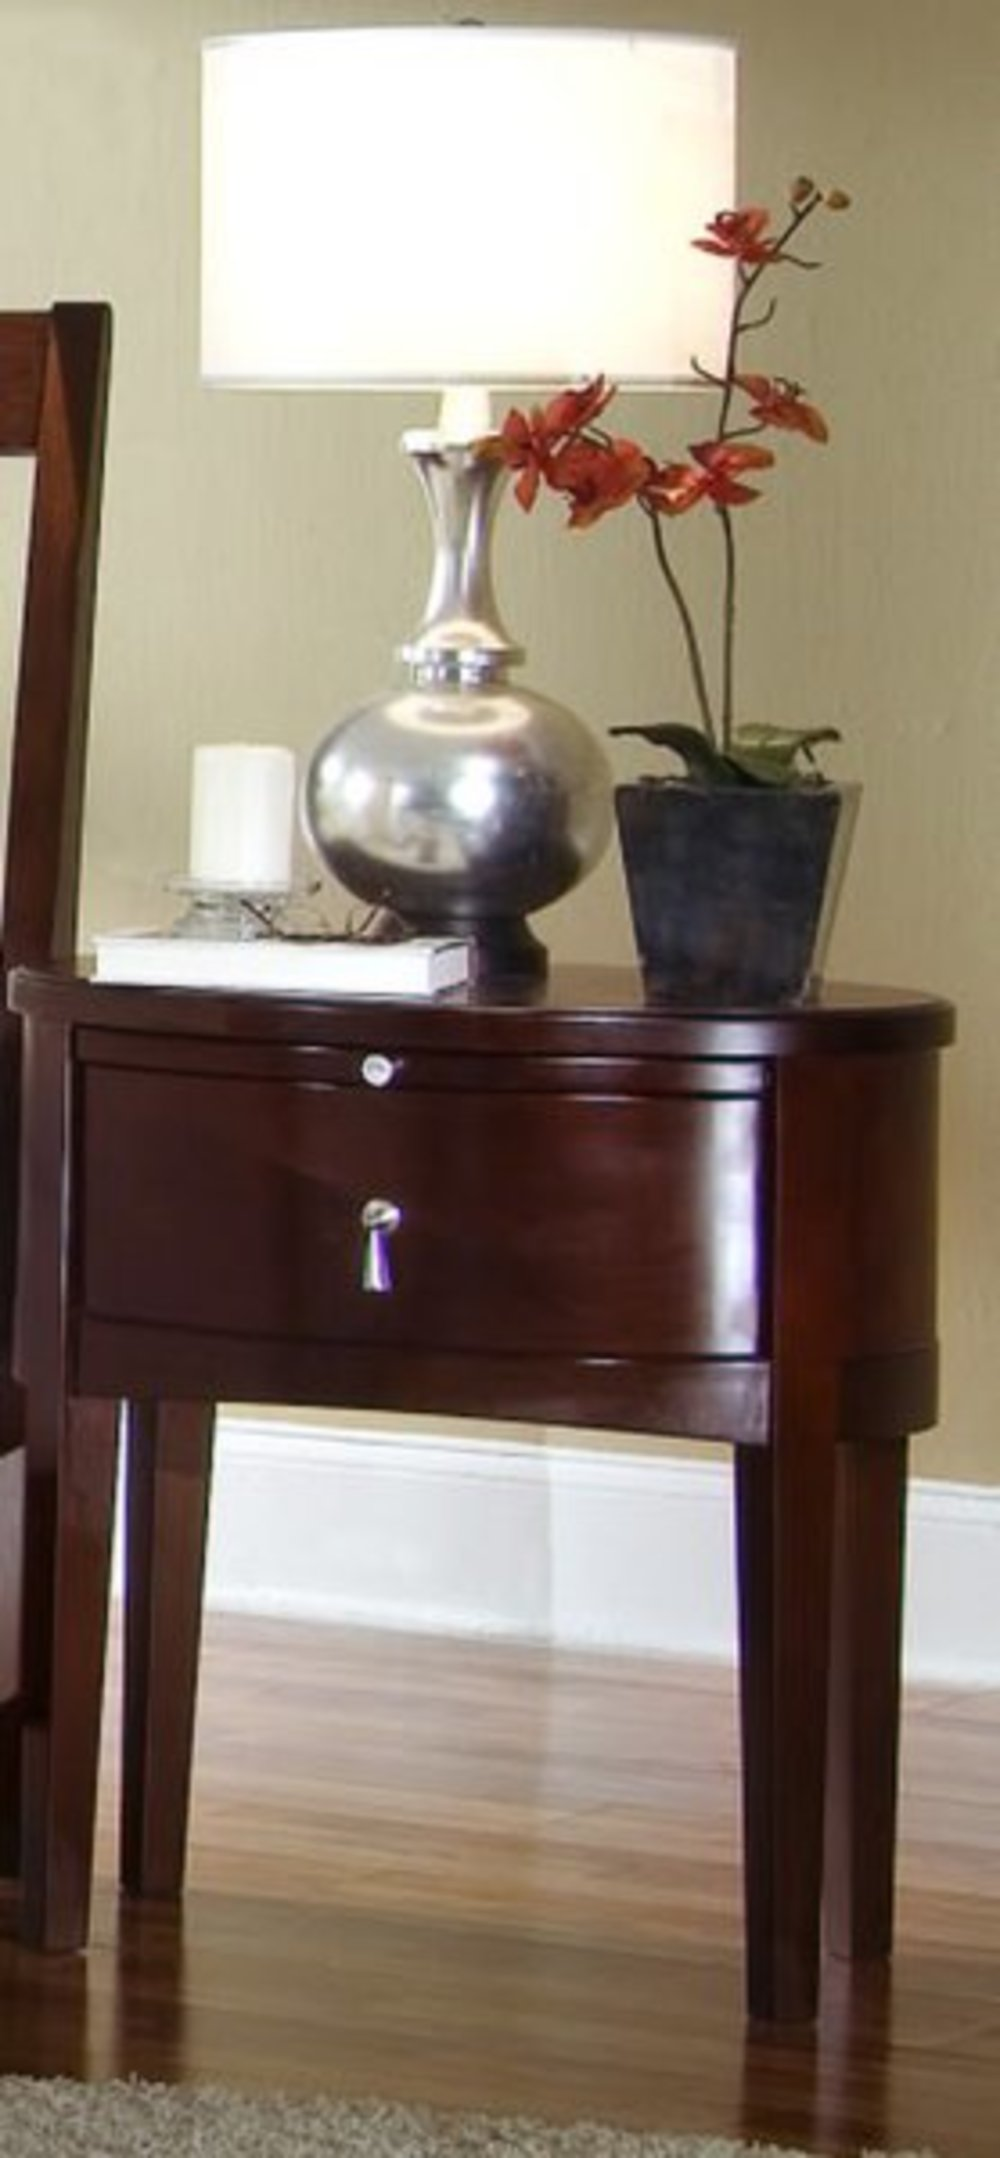 Ligna Furniture - One Drawer Oval Nightstand